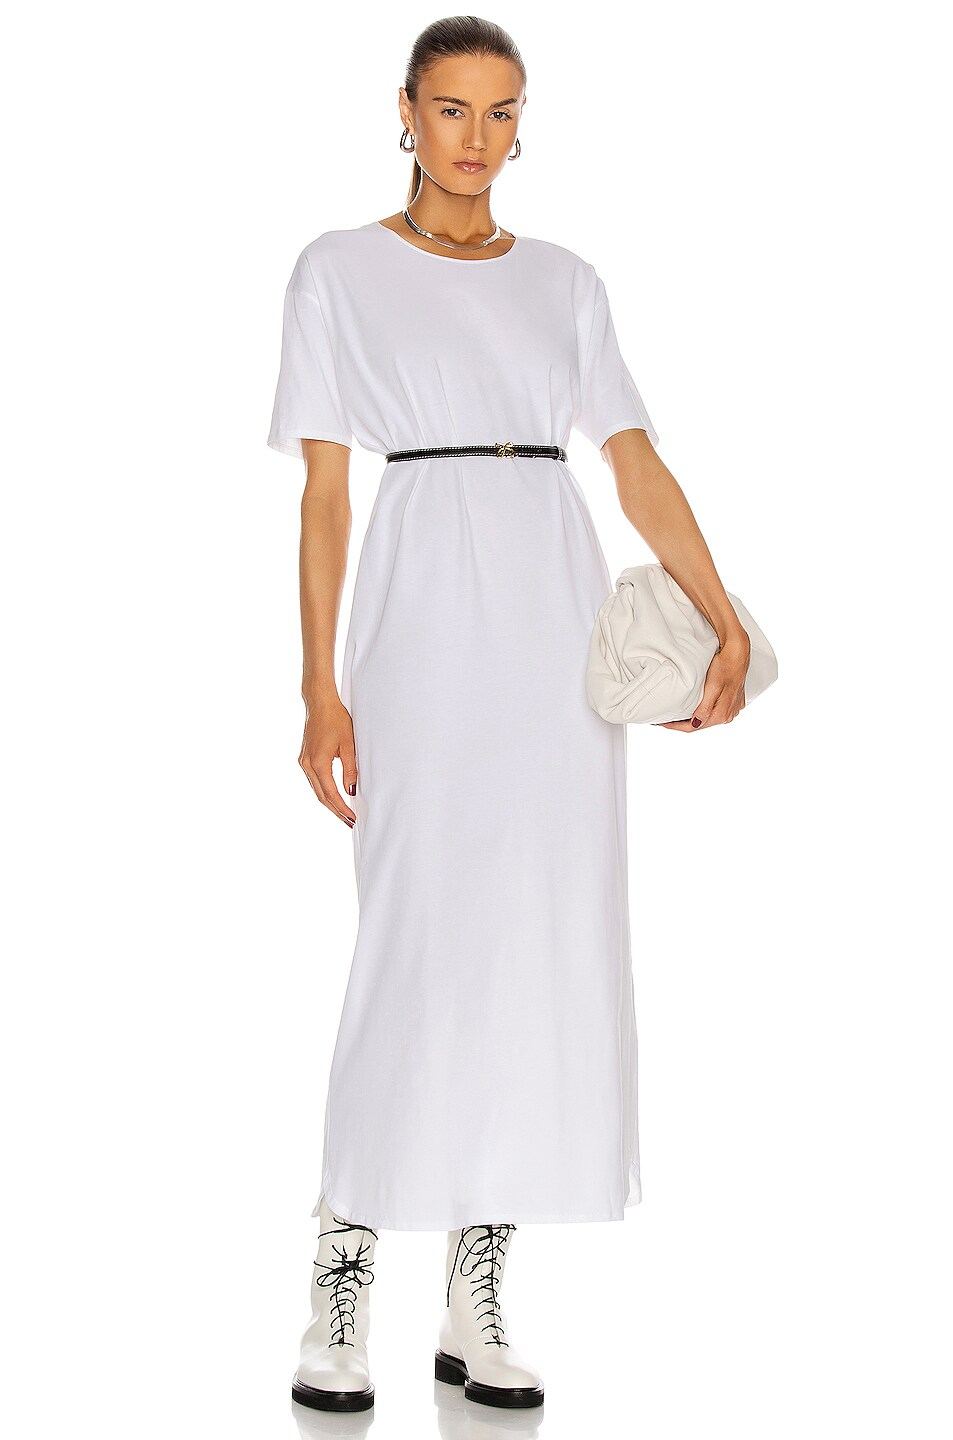 Image 1 of Loulou Studio Arue Robe Dress in White